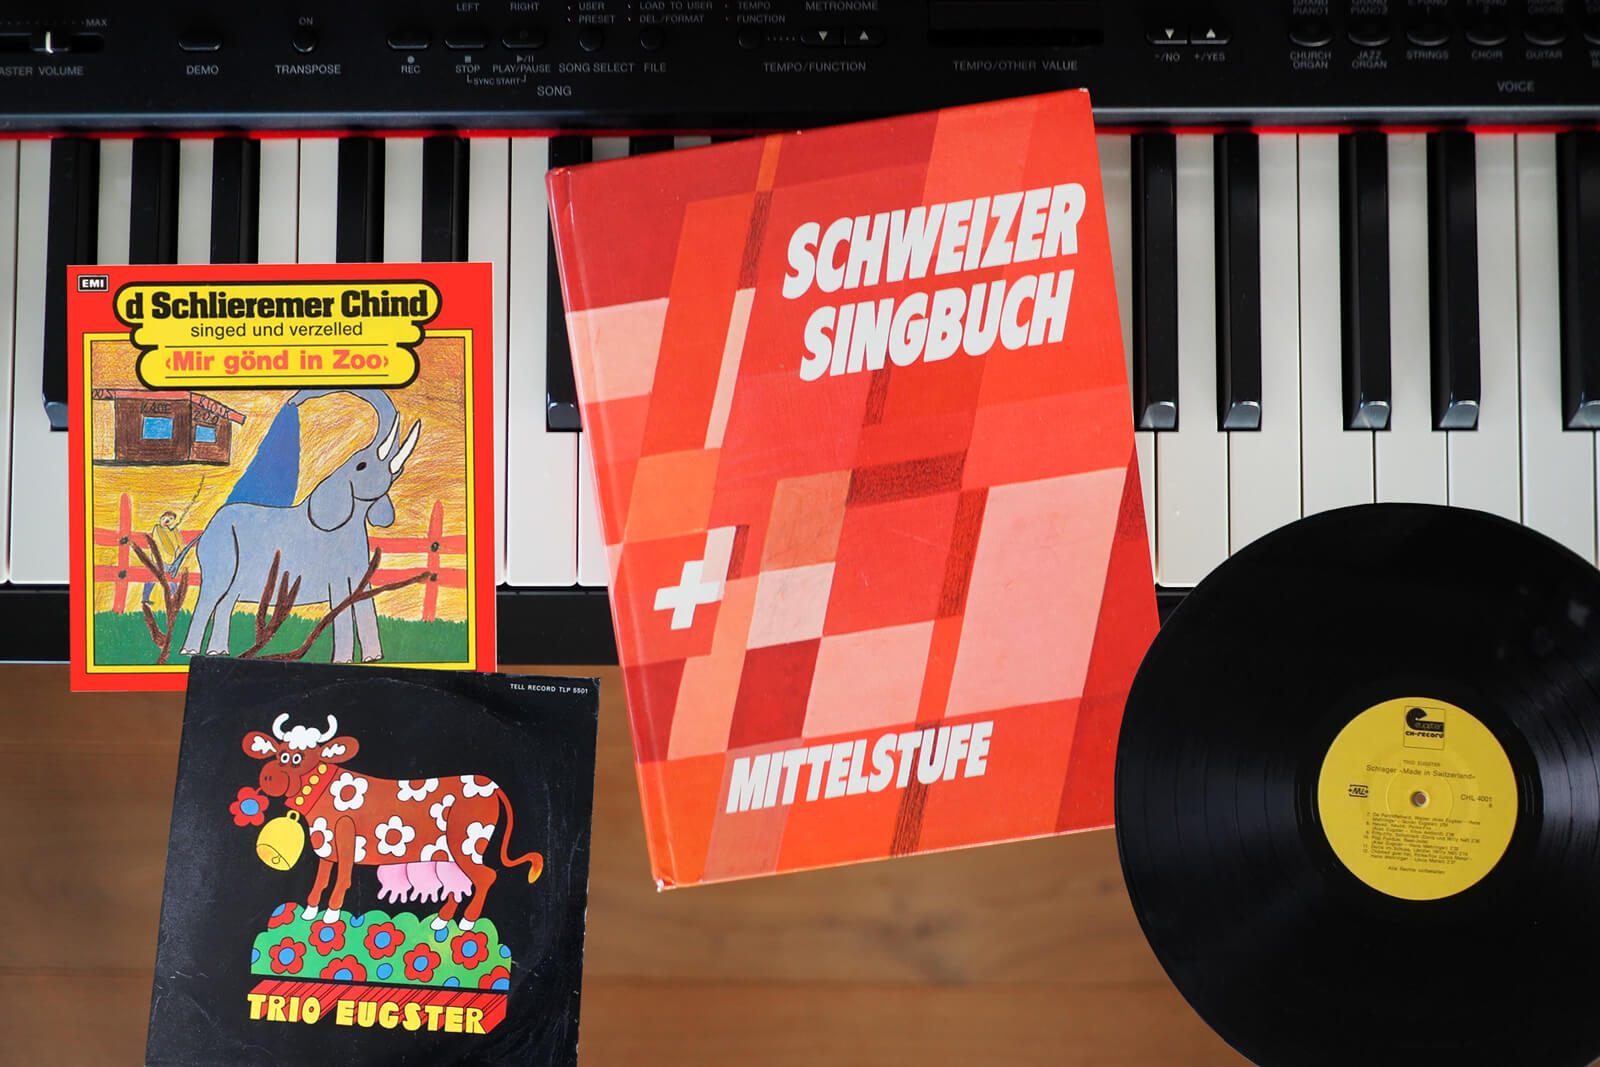 Swiss German songs from My Childhood - Schweizer Singbuch